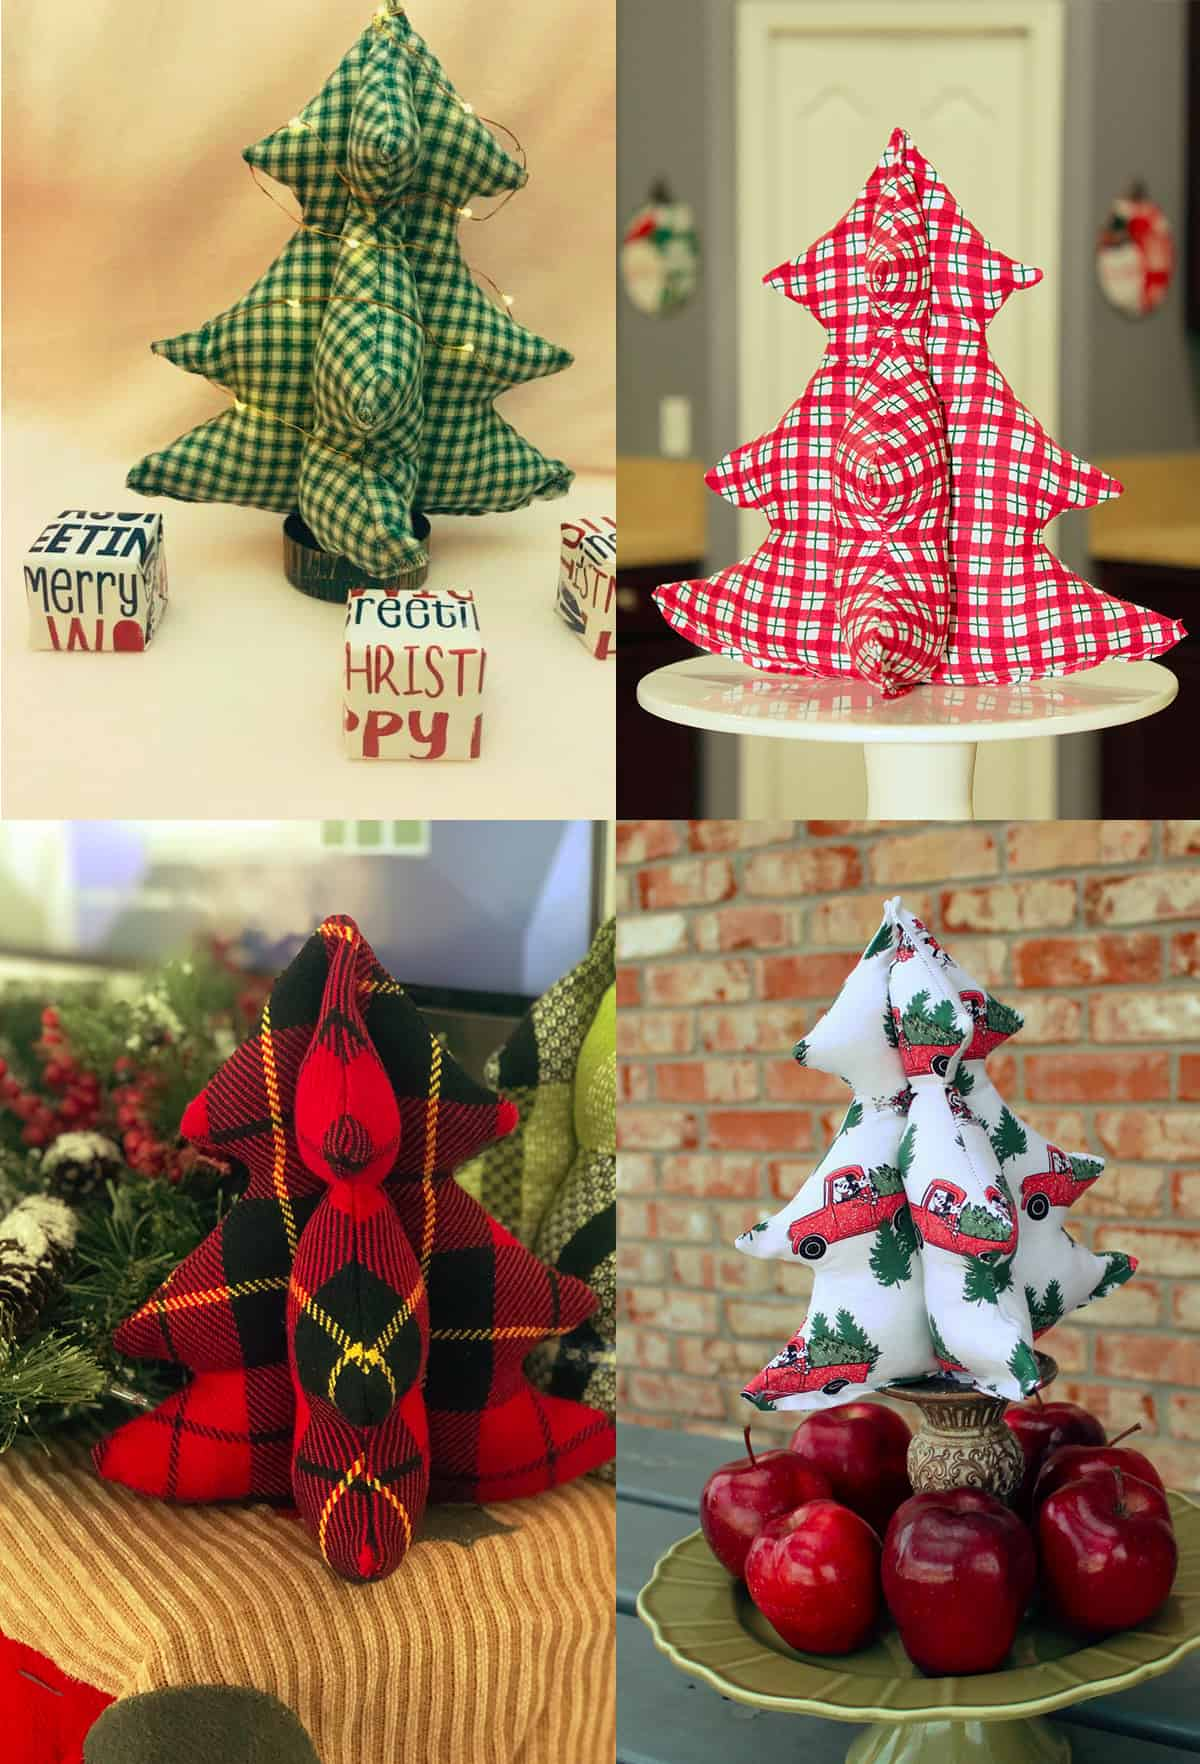 2019 Holiday Freebies Festive Fabric Trees Patterns For Pirates